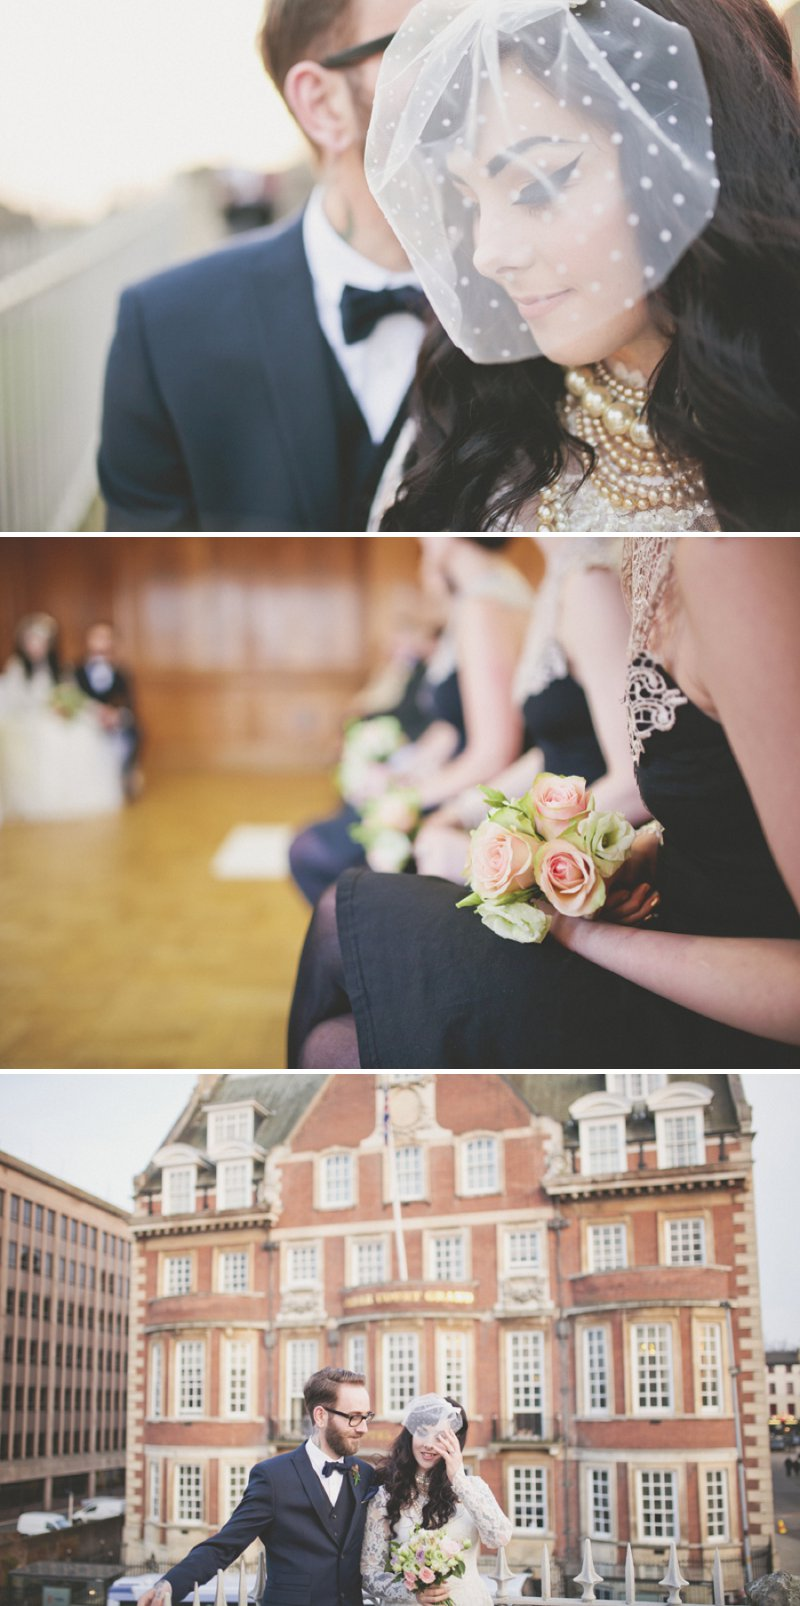 Vintage Emporium Style Wedding At Cedar Court Grand York With Bride In Vintage Gown From Glory Days York And Vintage Pearls And Groom In 20s Style Five Piece Suit With Bridesmaids In Black And White Lace Dresses From New Look 1